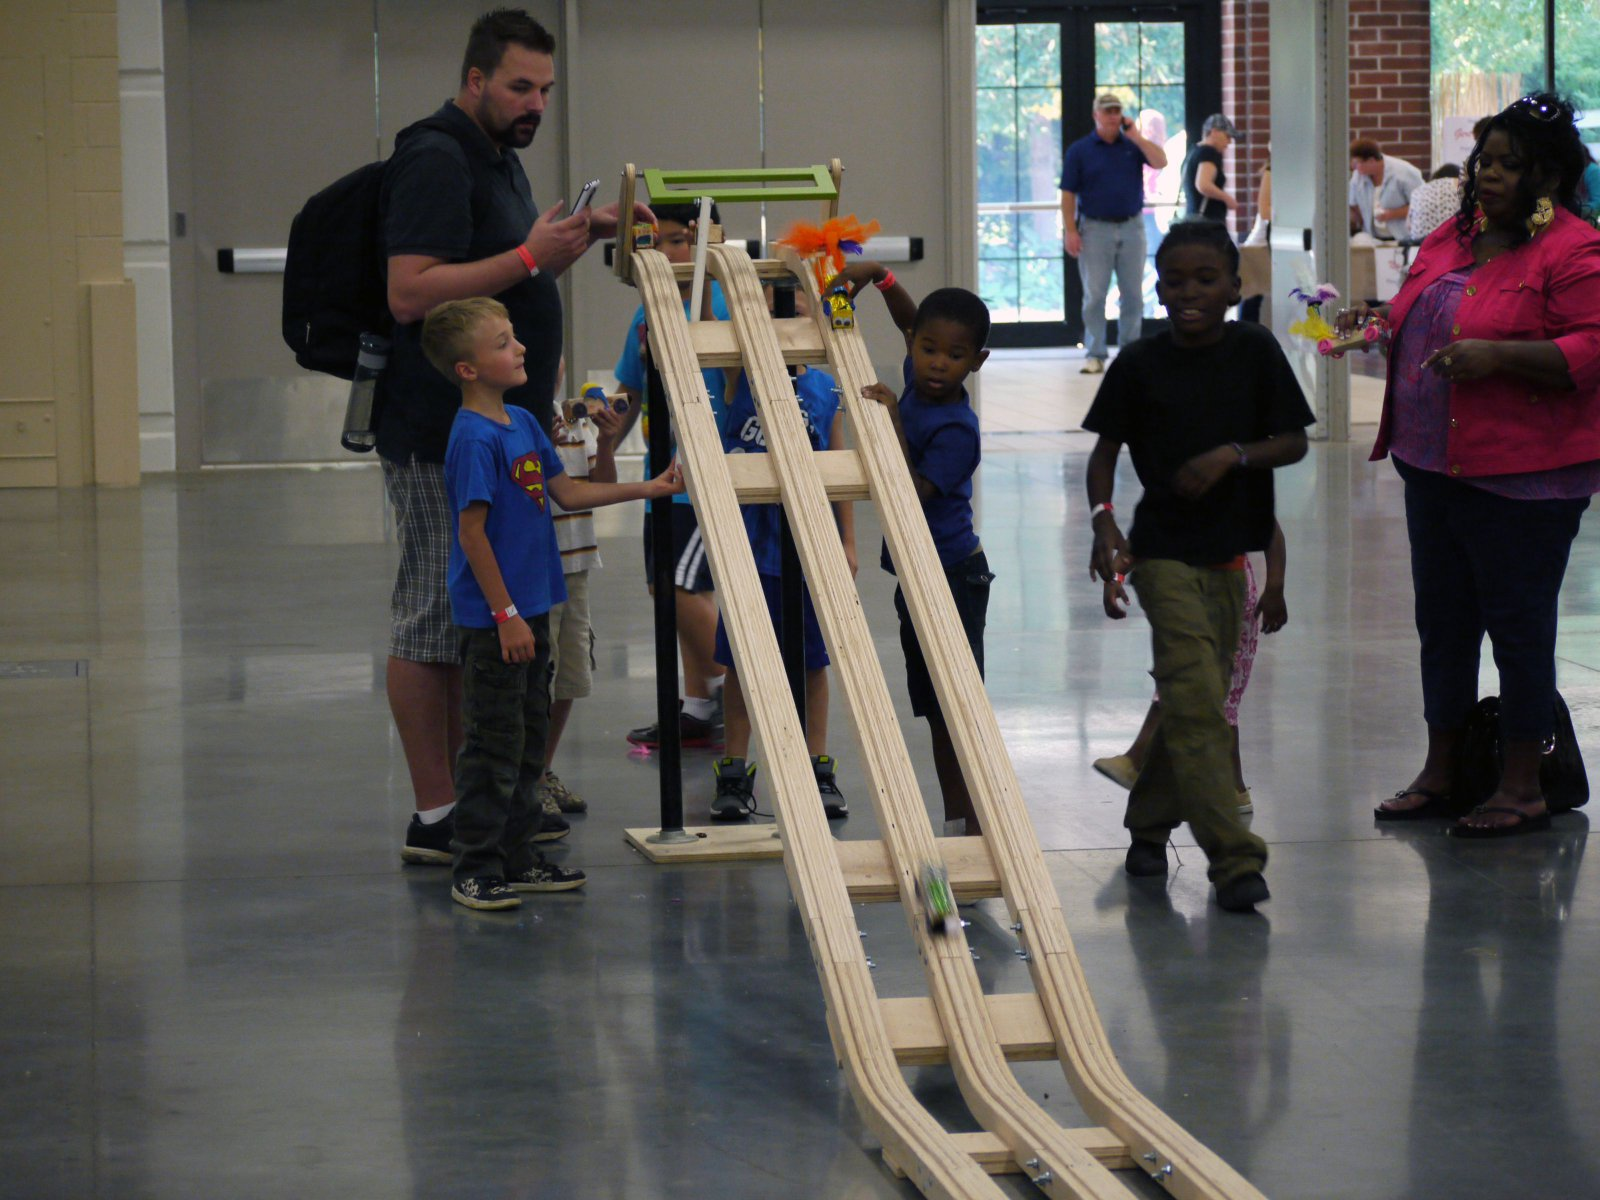 Young makers trying their new creations on the race track